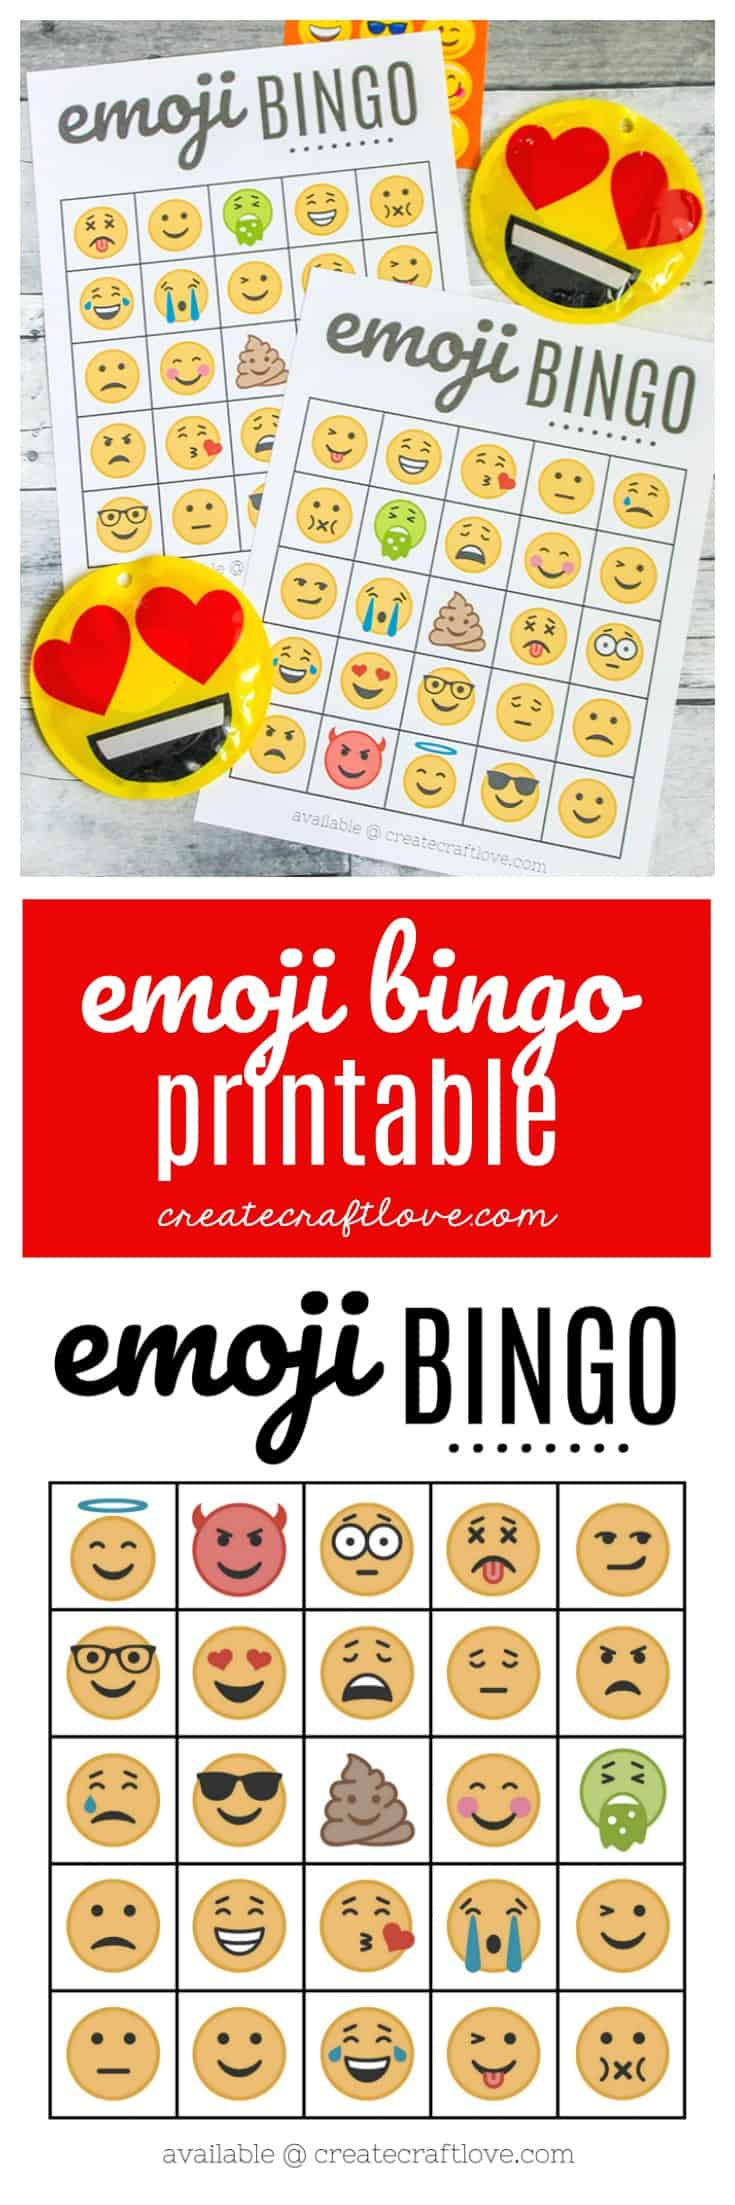 It is a picture of Emojis Printable for feeling